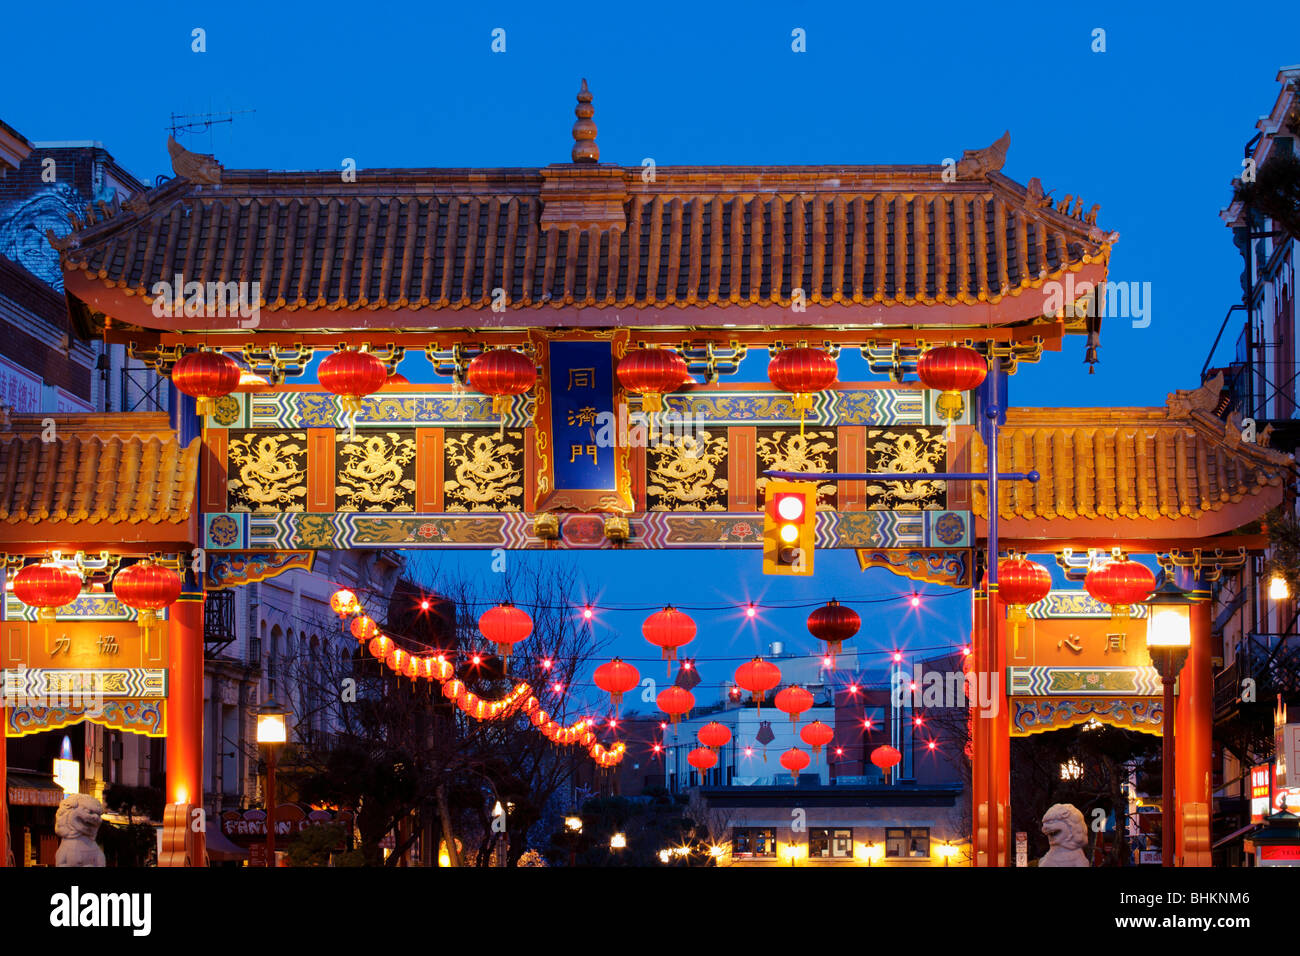 Victoria Chinatown  at night decorated for Year of the Tiger -Victoria, British Columbia, Canada. - Stock Image